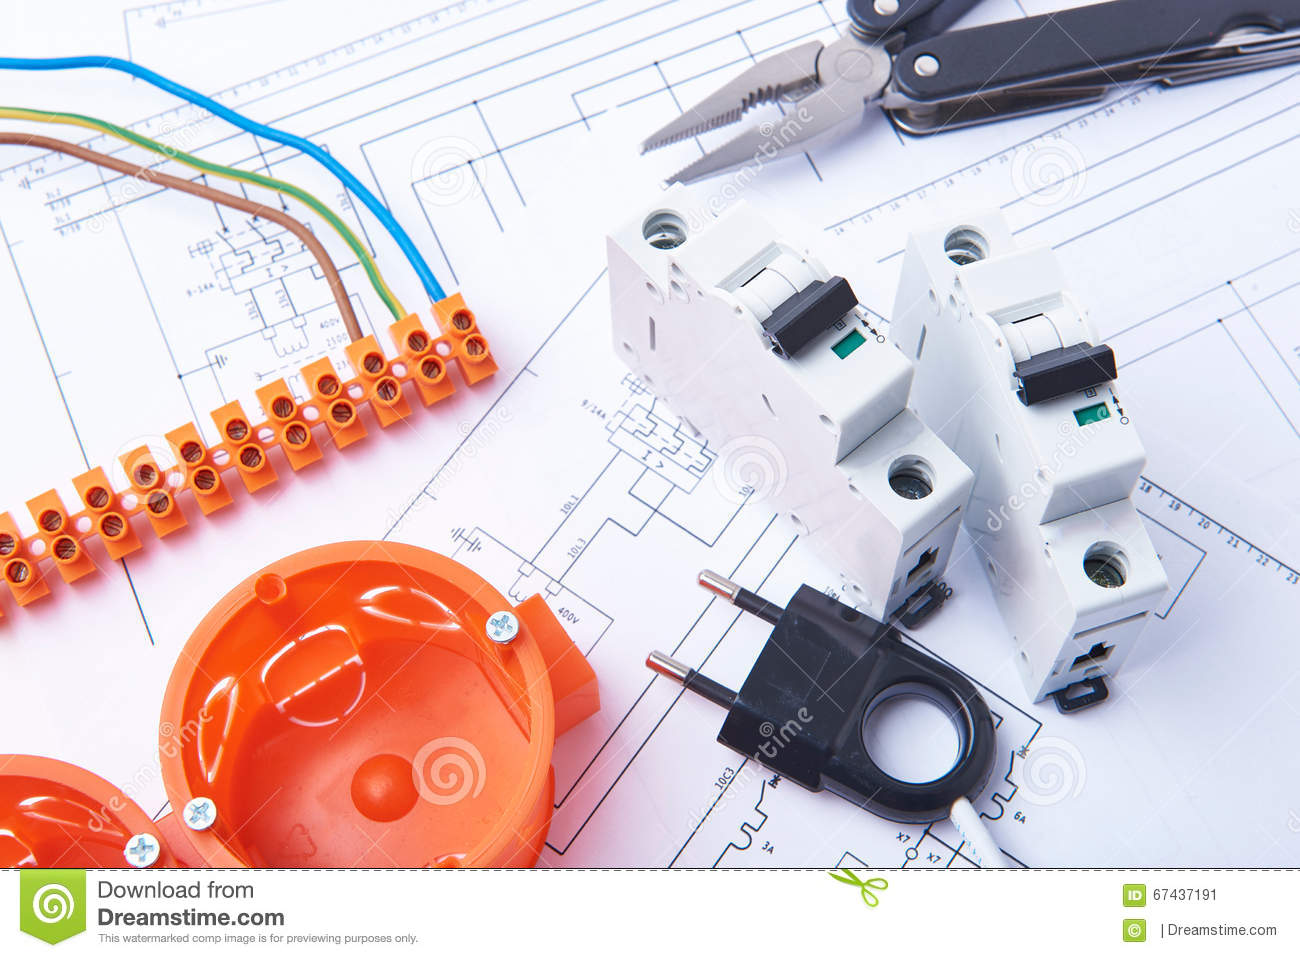 hight resolution of components for use in electrical installations fuses plug connectors junction box switch isolation tape and wires accessories for engineering work